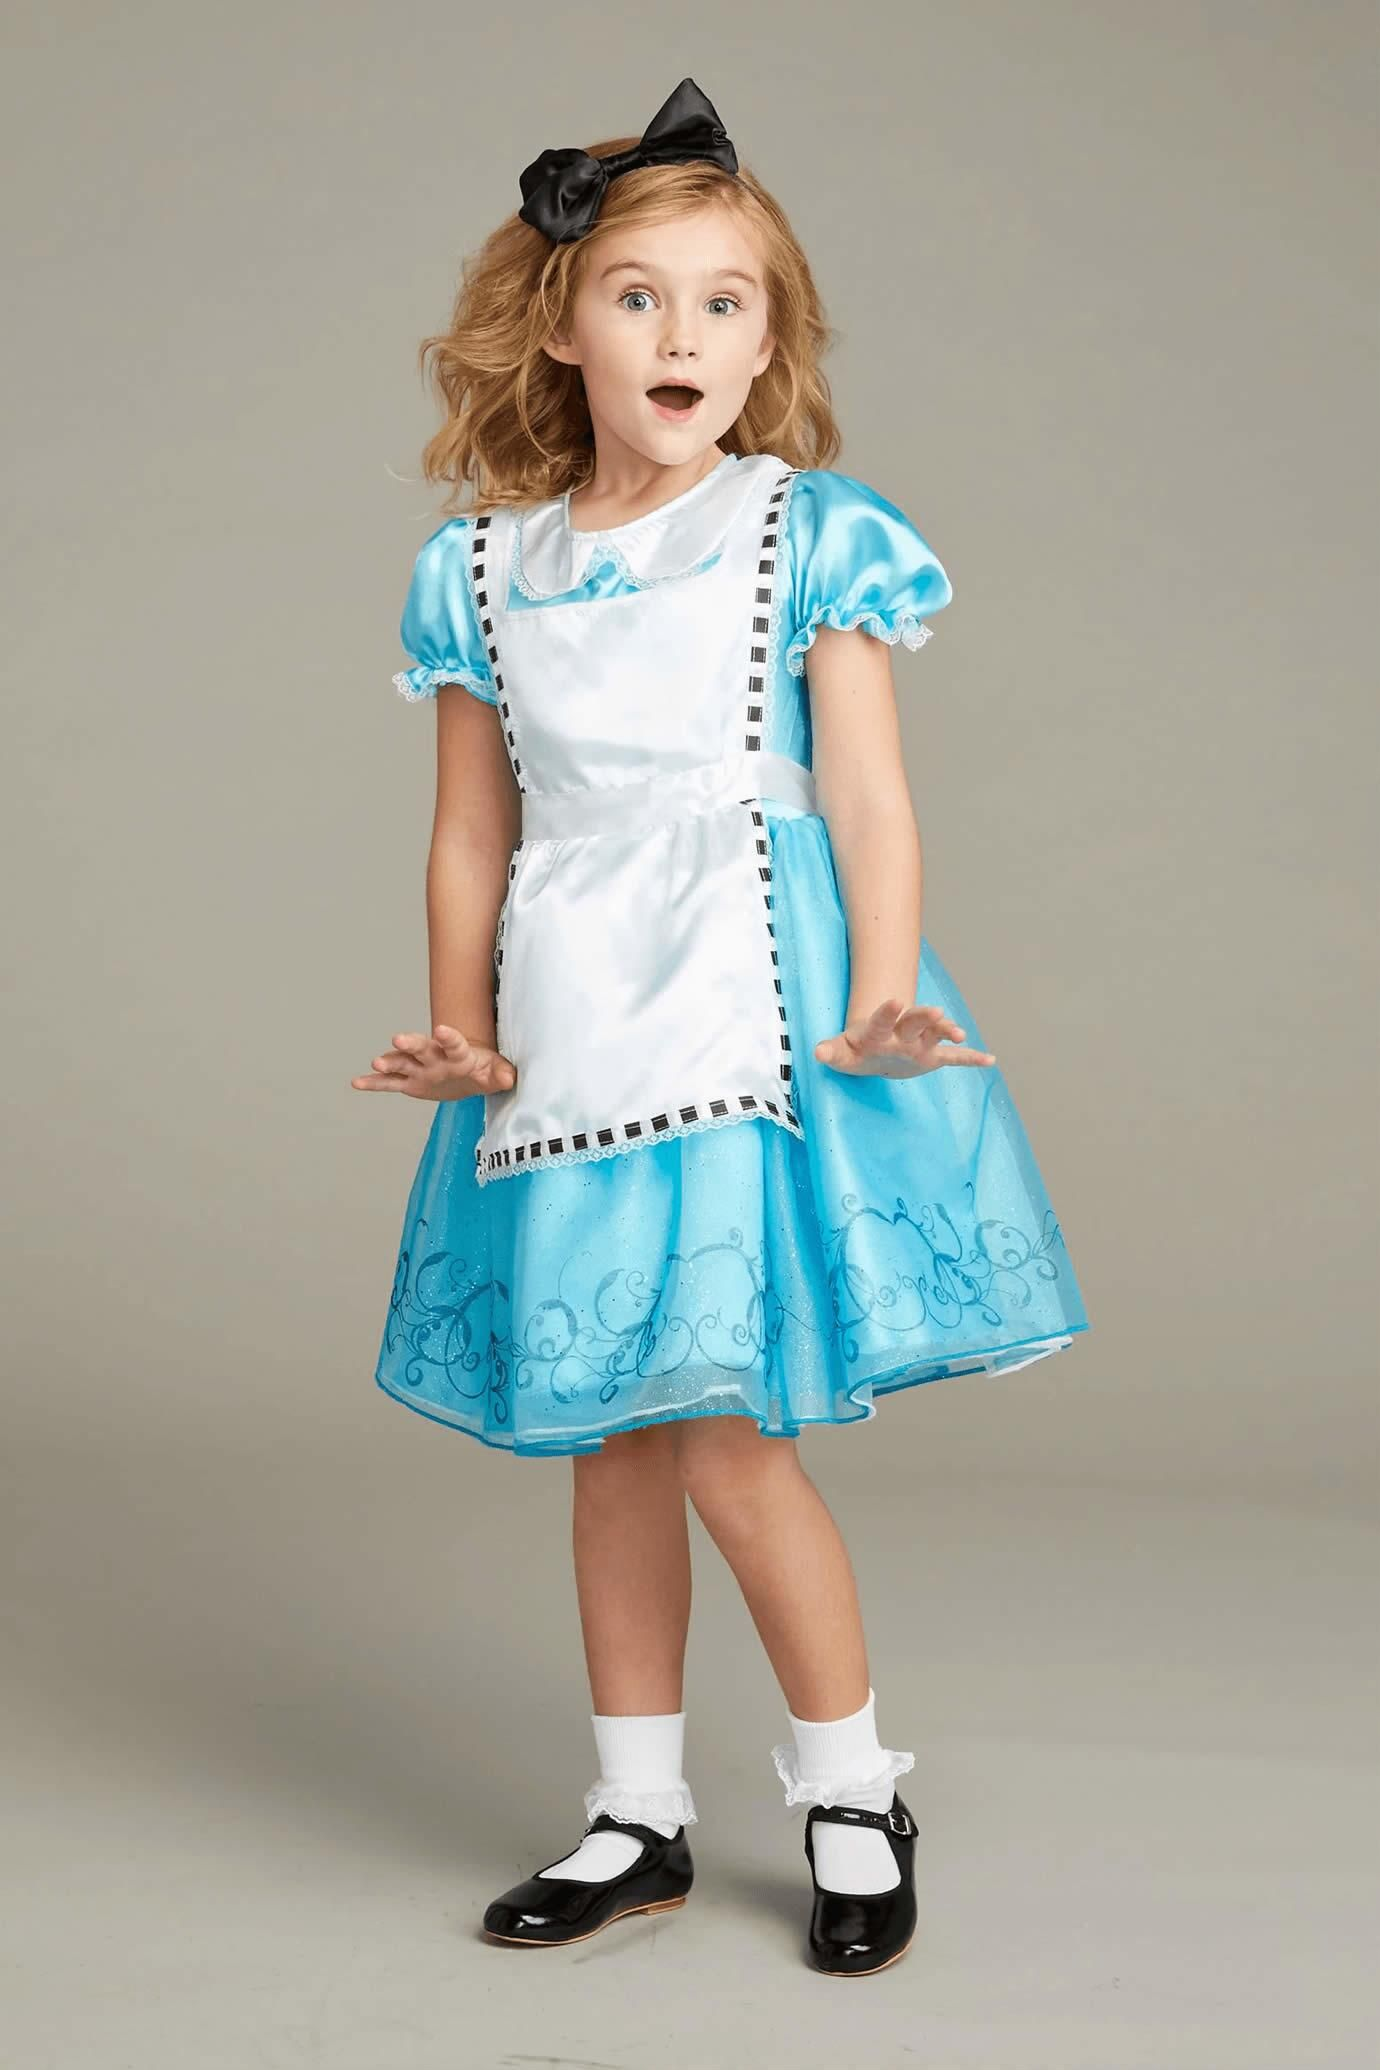 2e78b3c42e5 Tea Party Costume Play Set For Girls in 2019